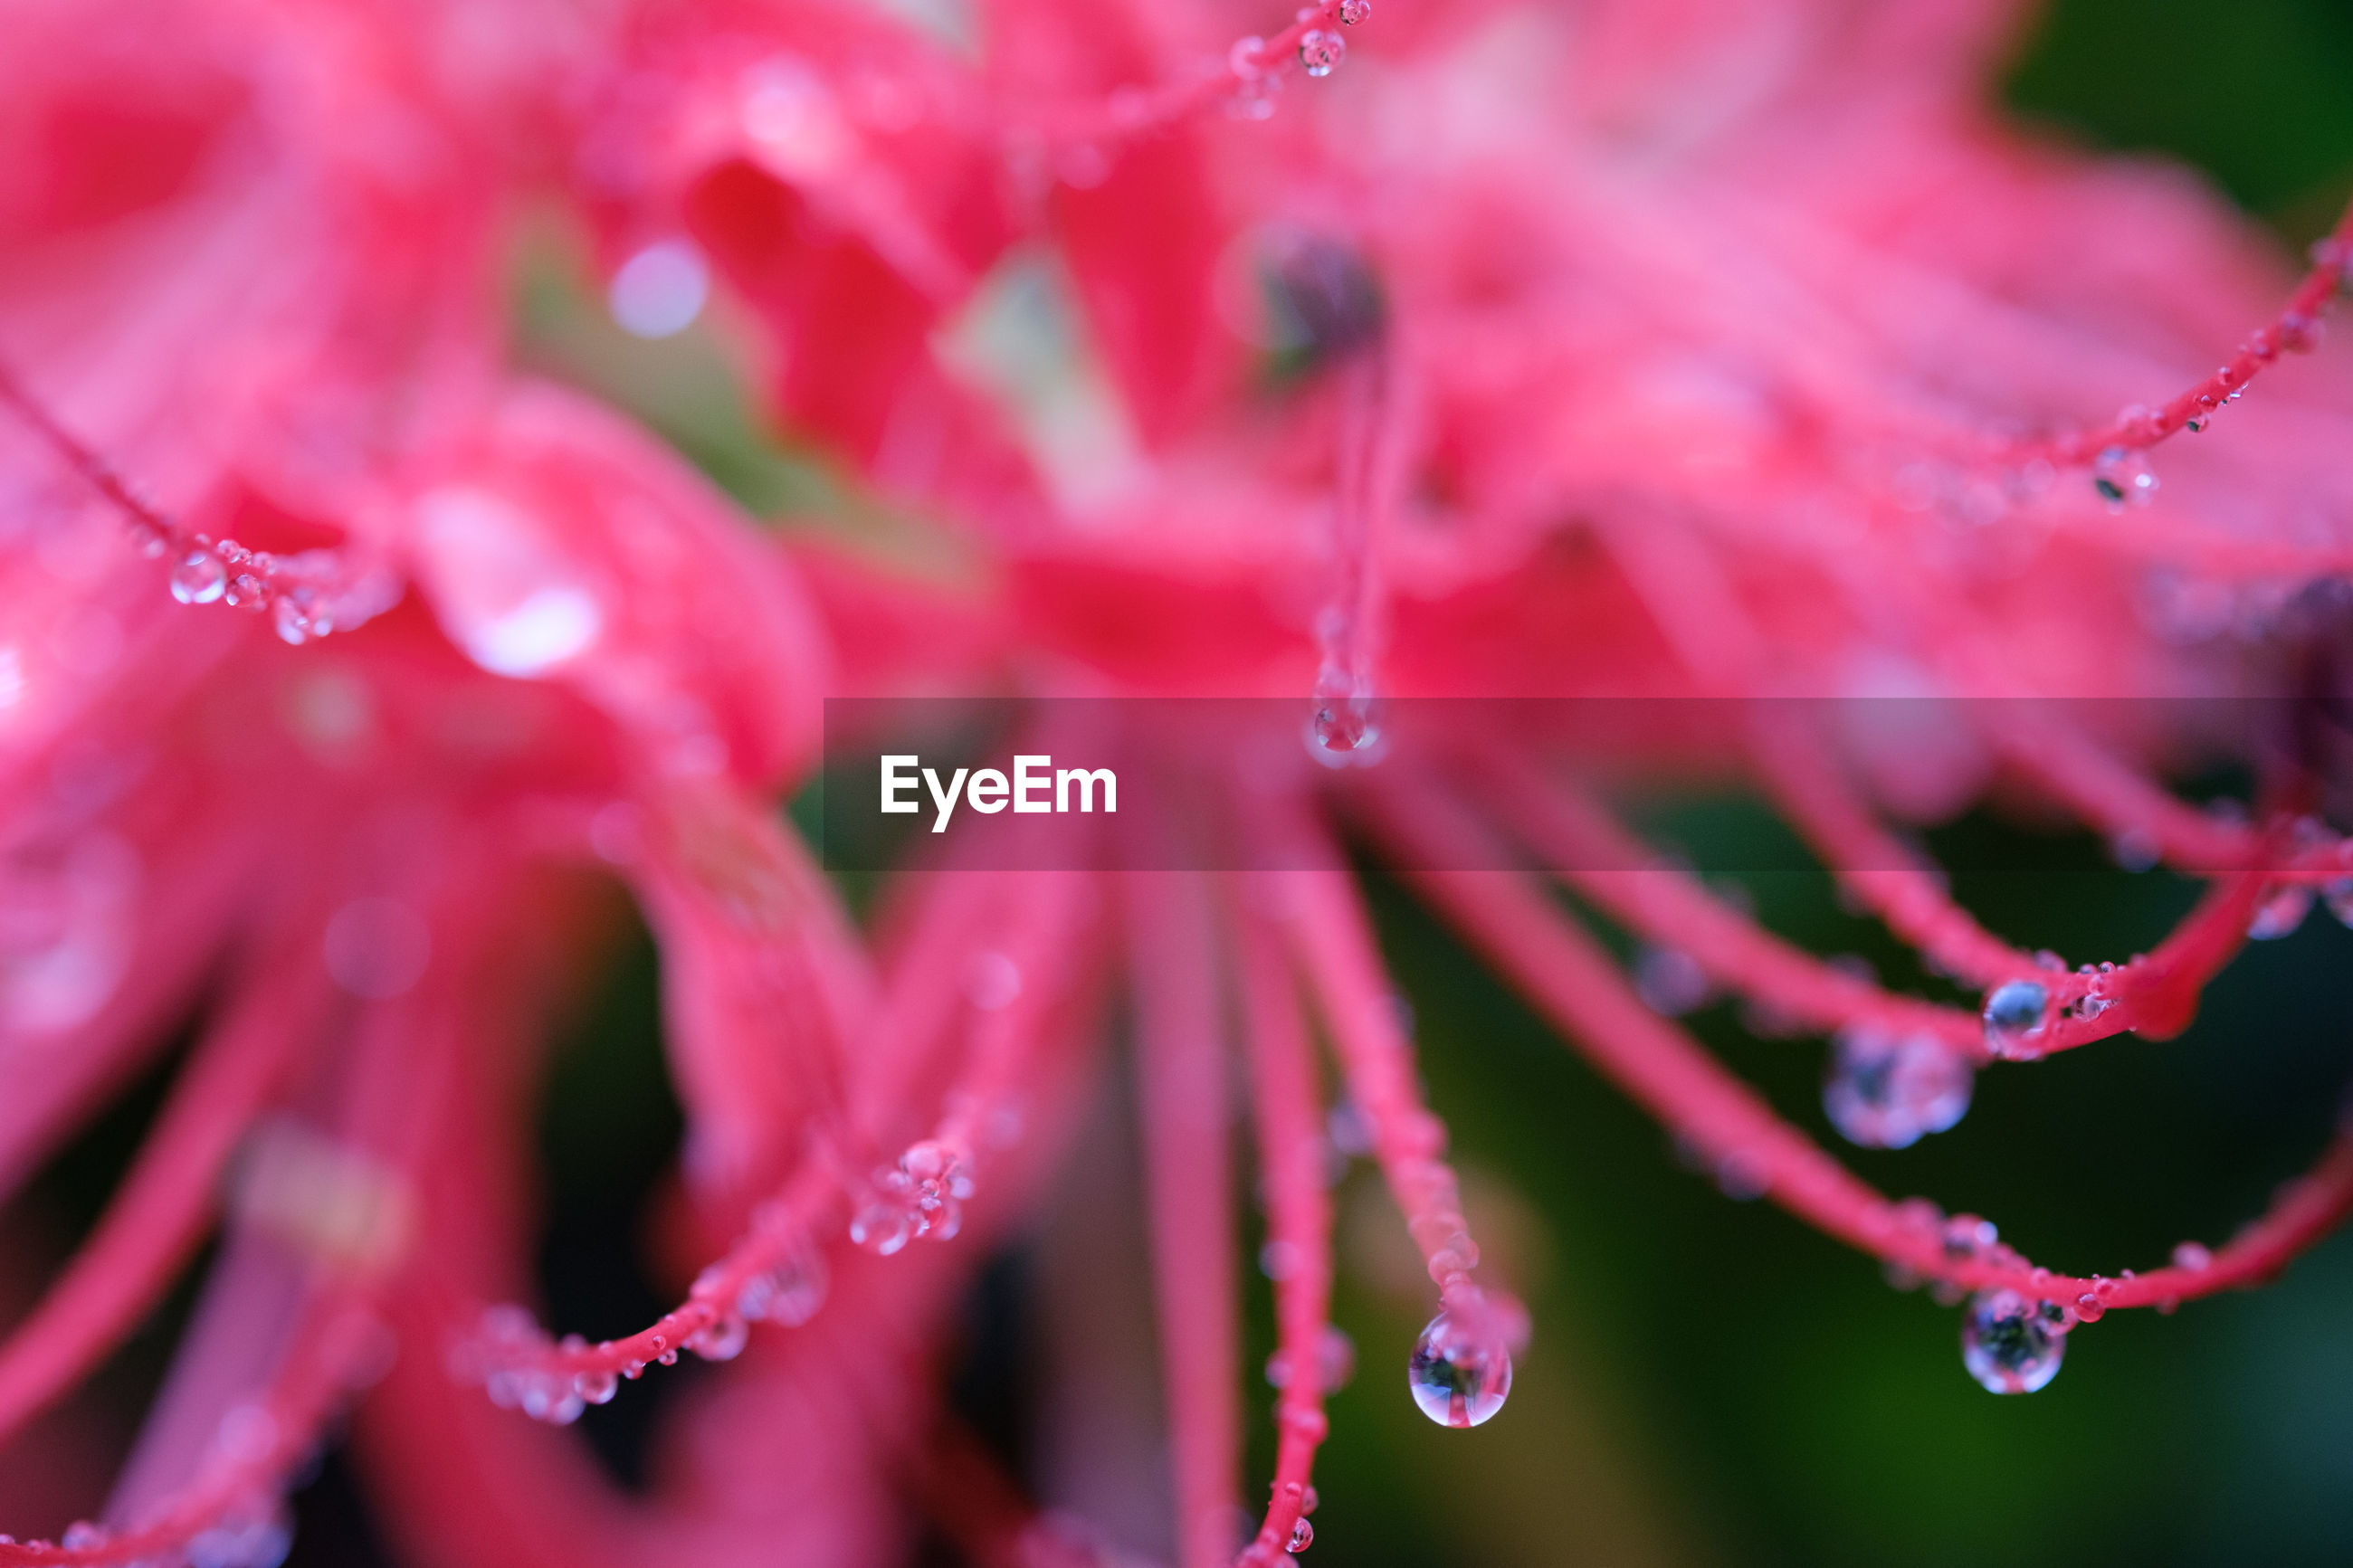 CLOSE-UP OF WATER DROPS ON RED LEAVES